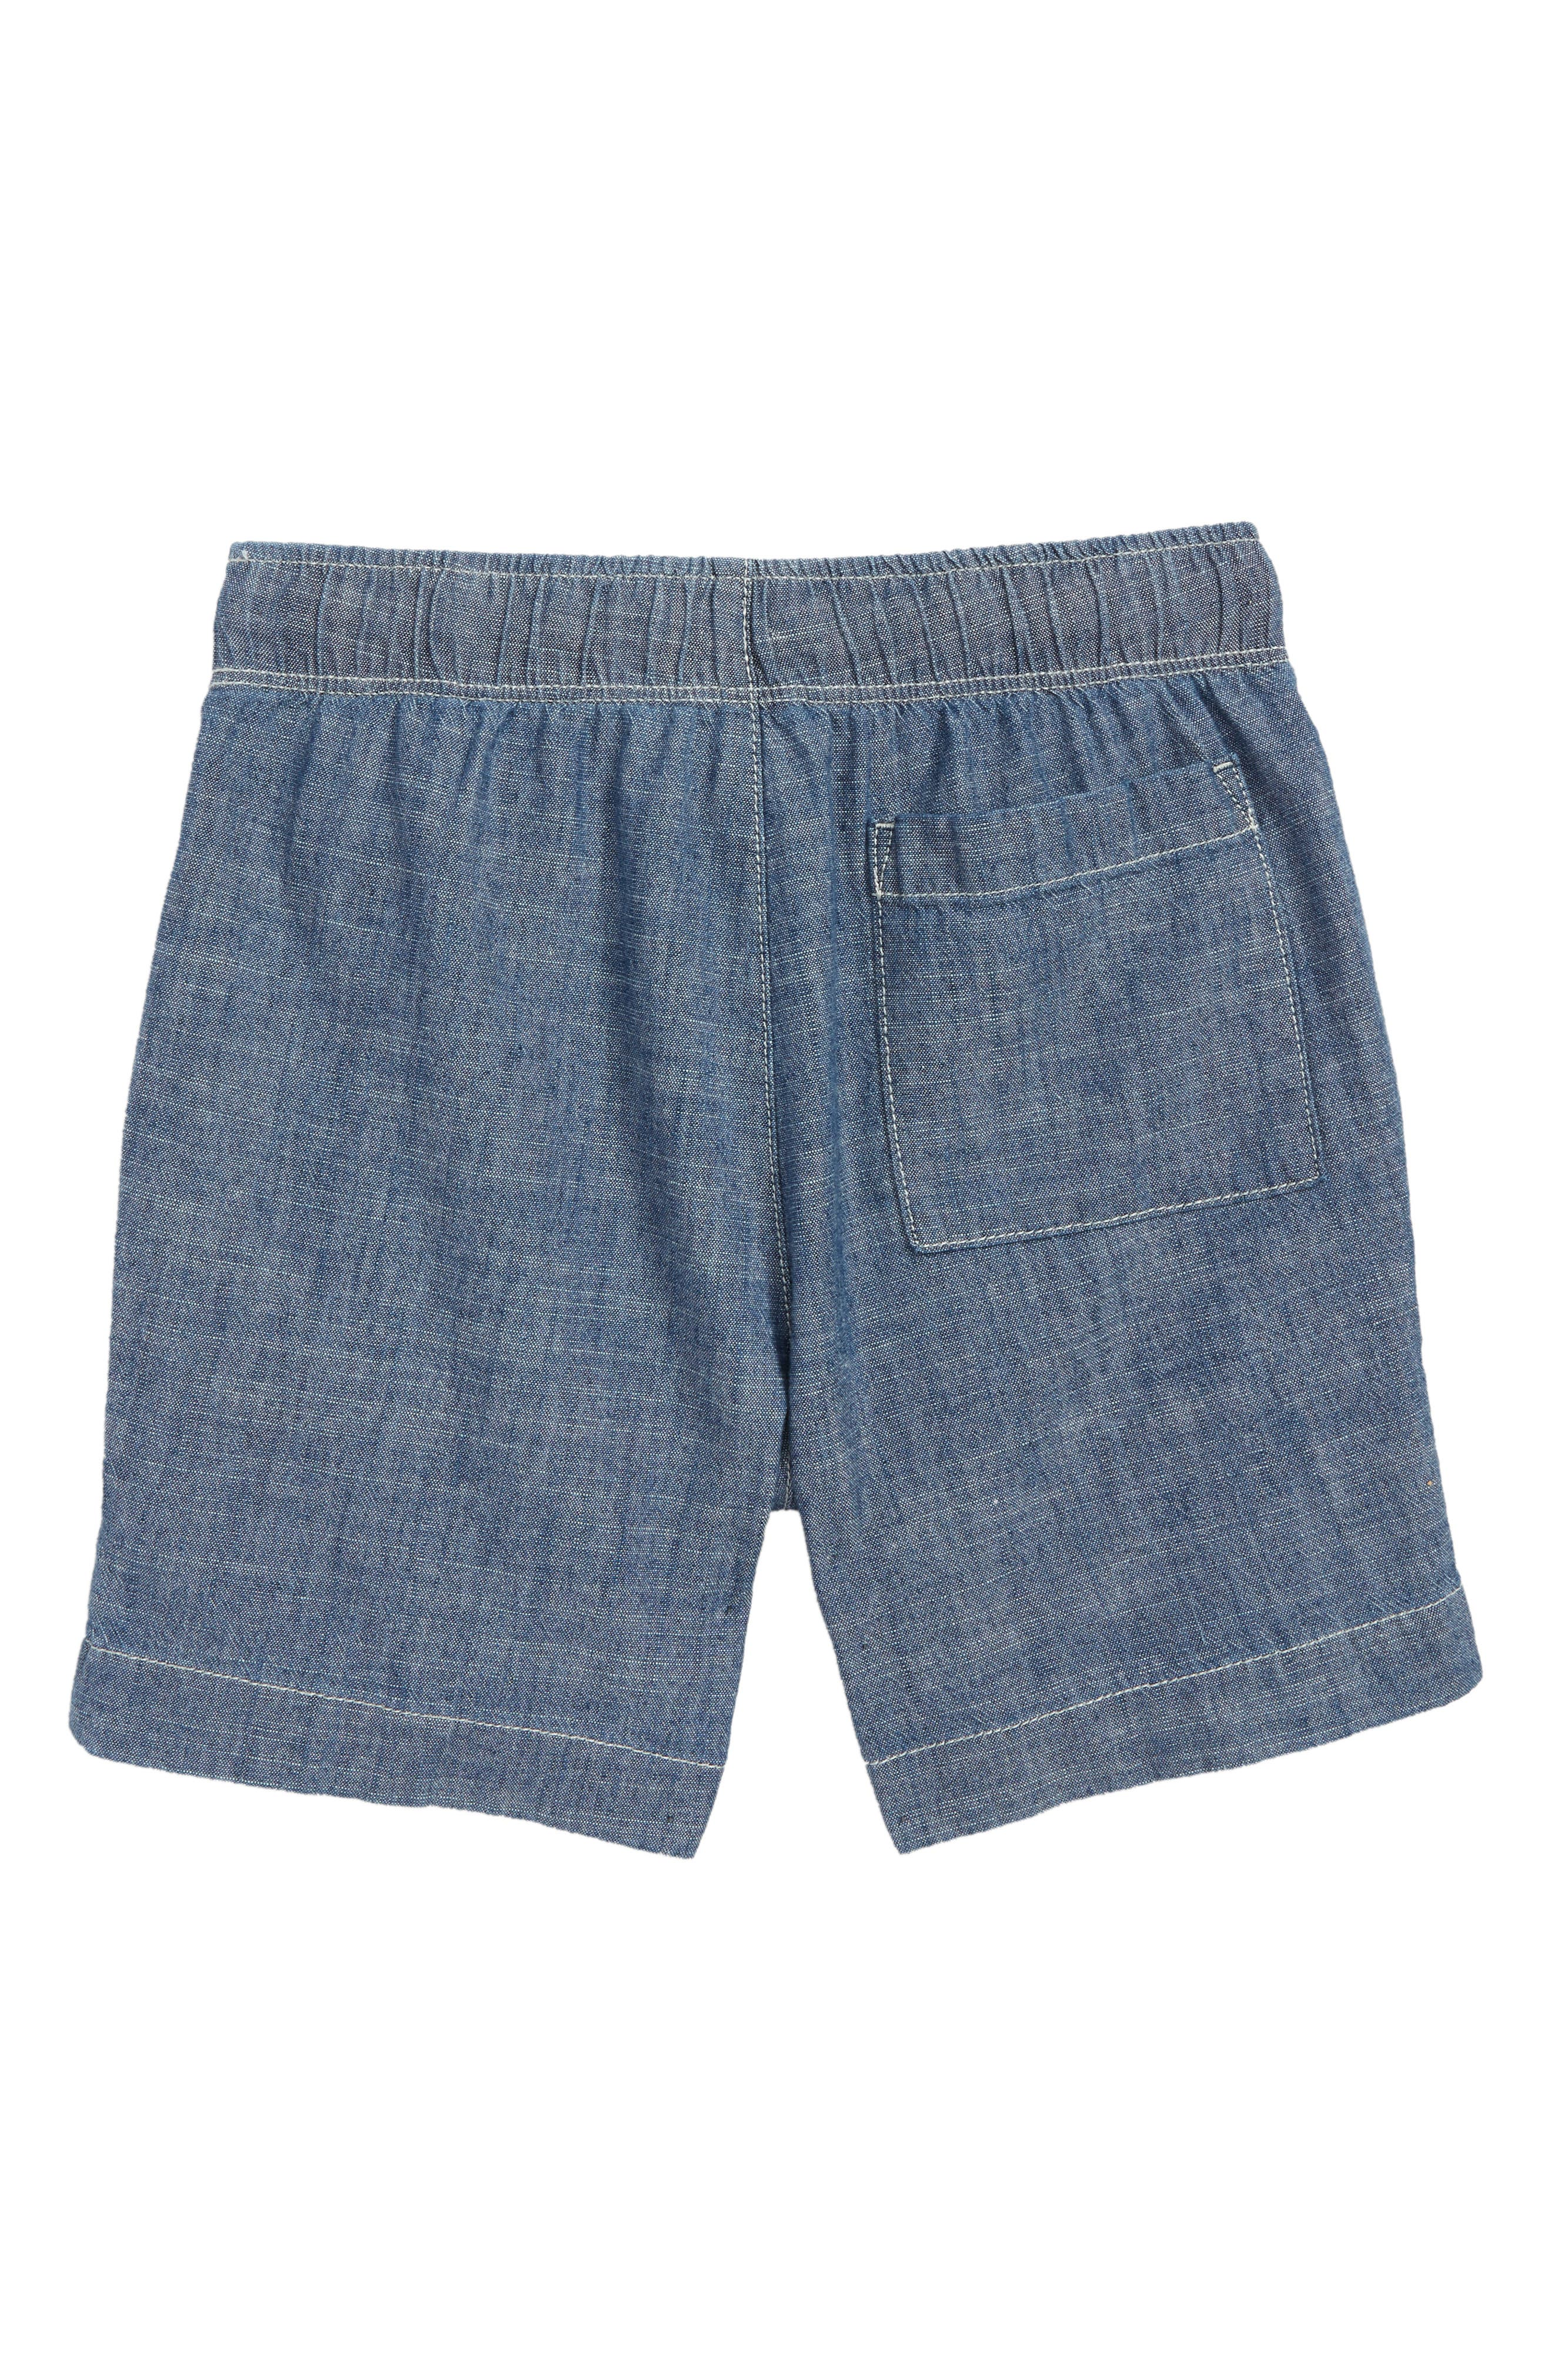 CREWCUTS BY J.CREW,                             Dock Chambray Shorts,                             Alternate thumbnail 2, color,                             400